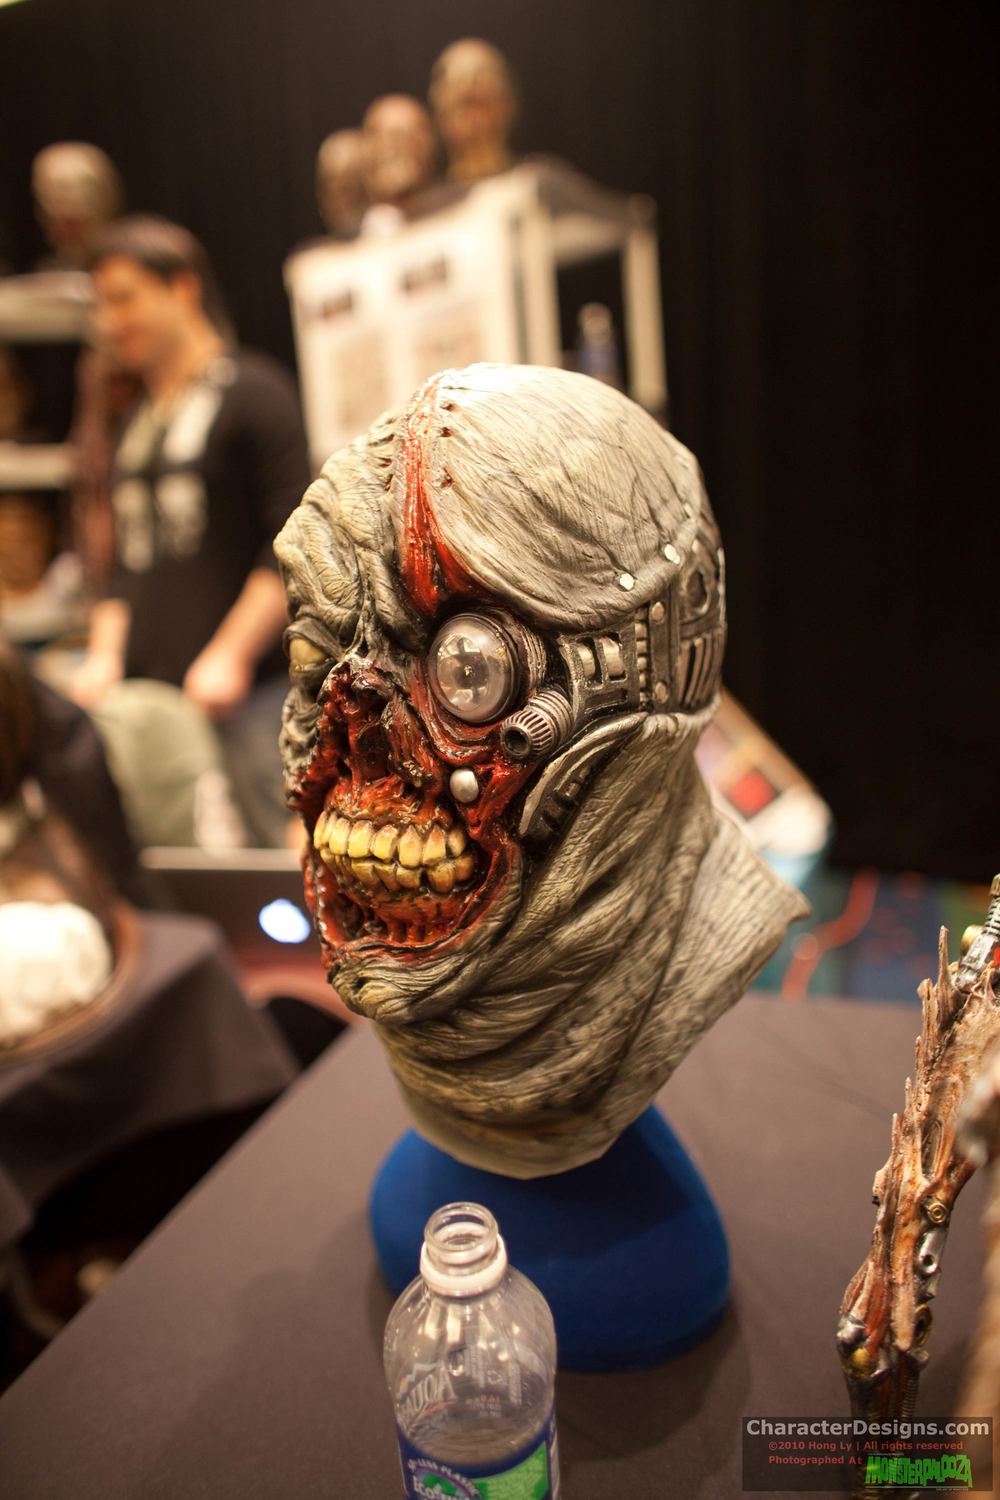 2010_Monsterpalooza_156.jpg